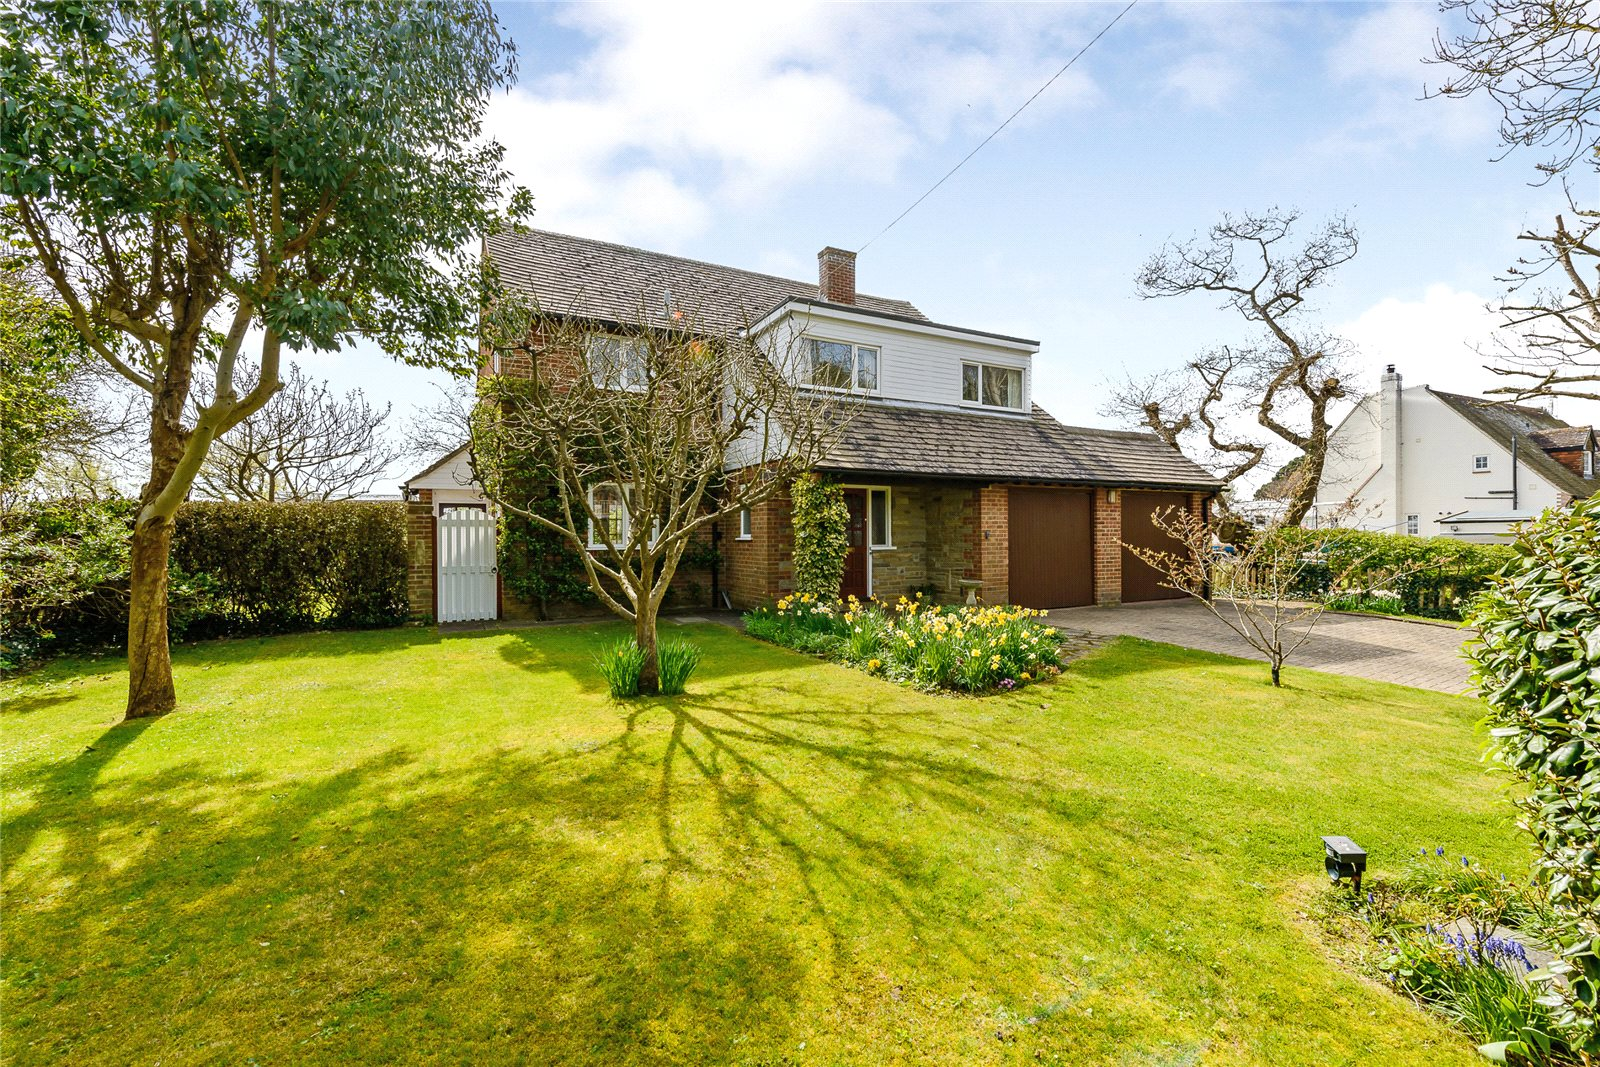 Villa per Vendita alle ore Elms Lane, West Wittering, Chichester, West Sussex, PO20 Chichester, Inghilterra